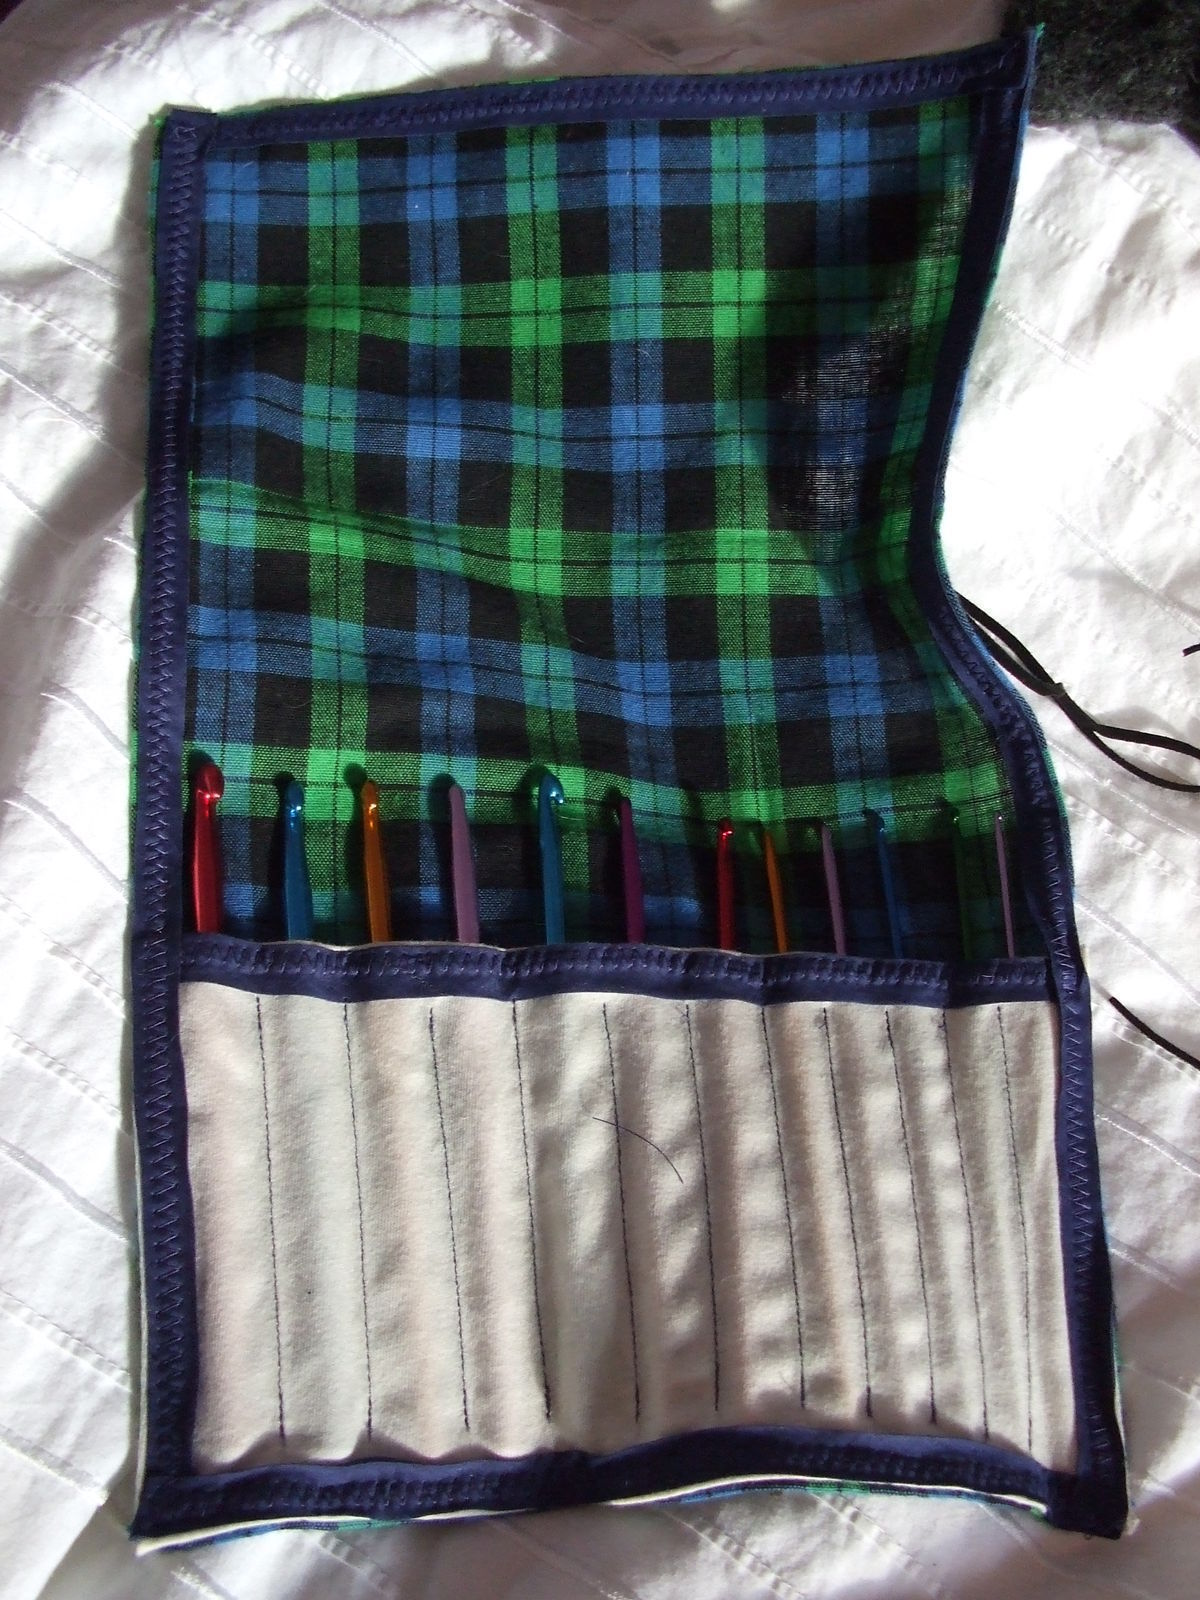 Crochet Hook Case 183 How To Sew A Roll Up Pouch 183 Sewing On